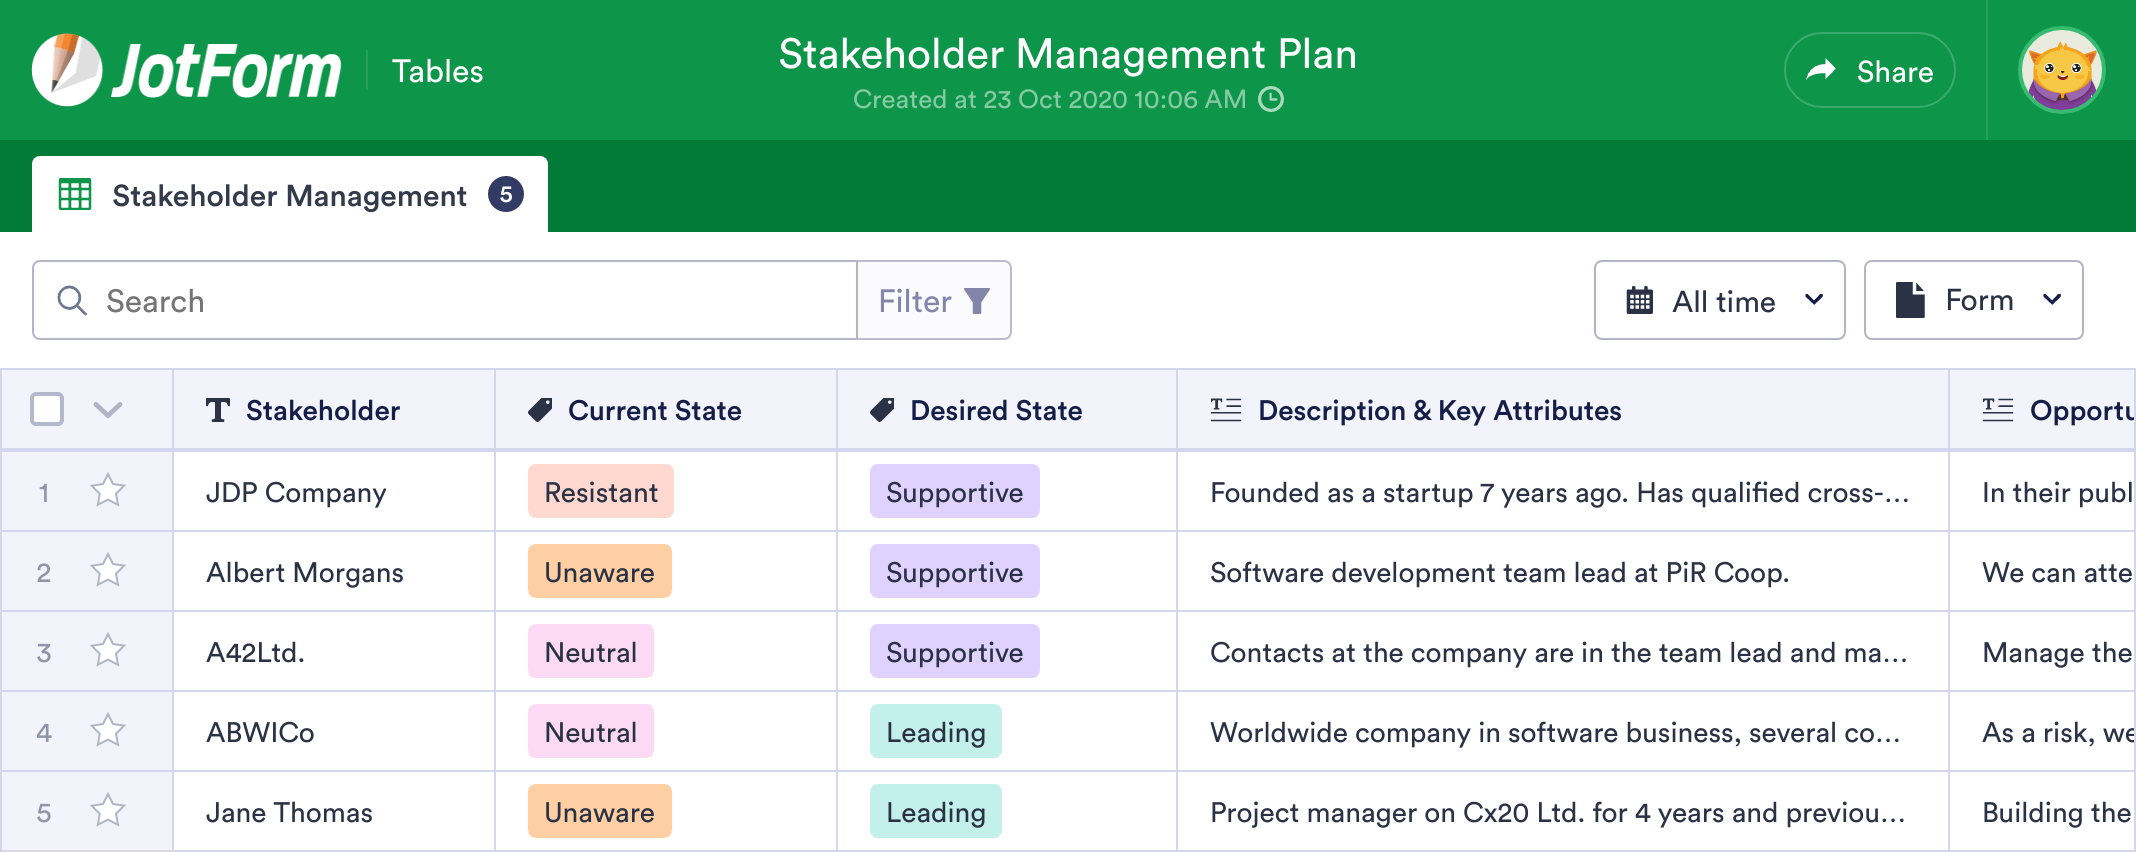 Stakeholder Management Plan